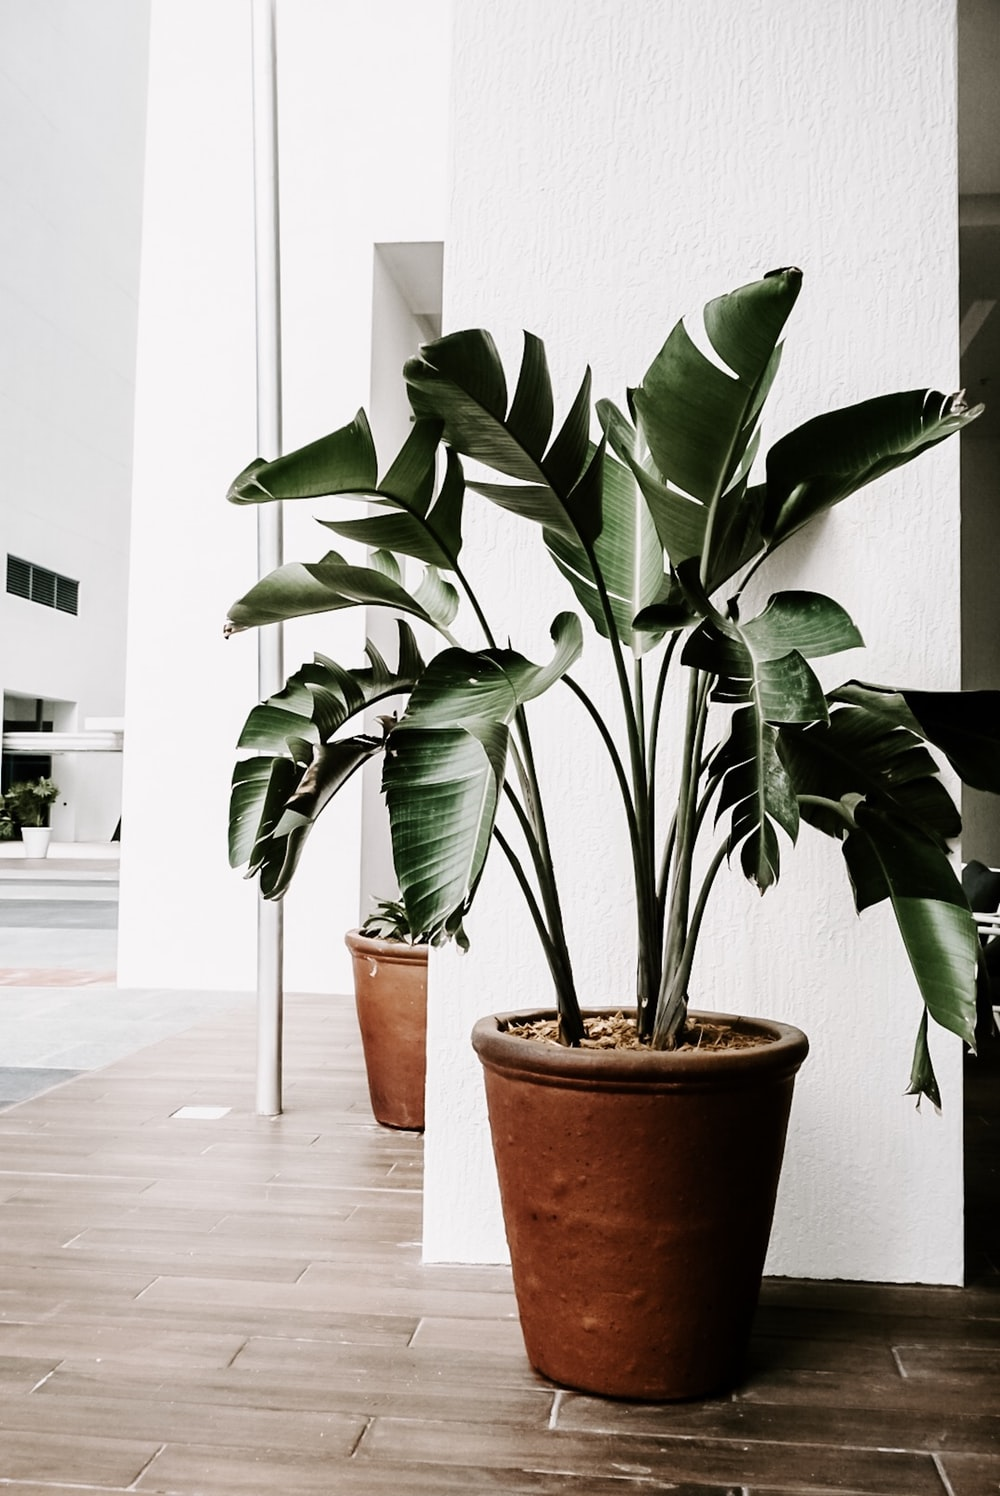 green-leafed plant in planter inside room